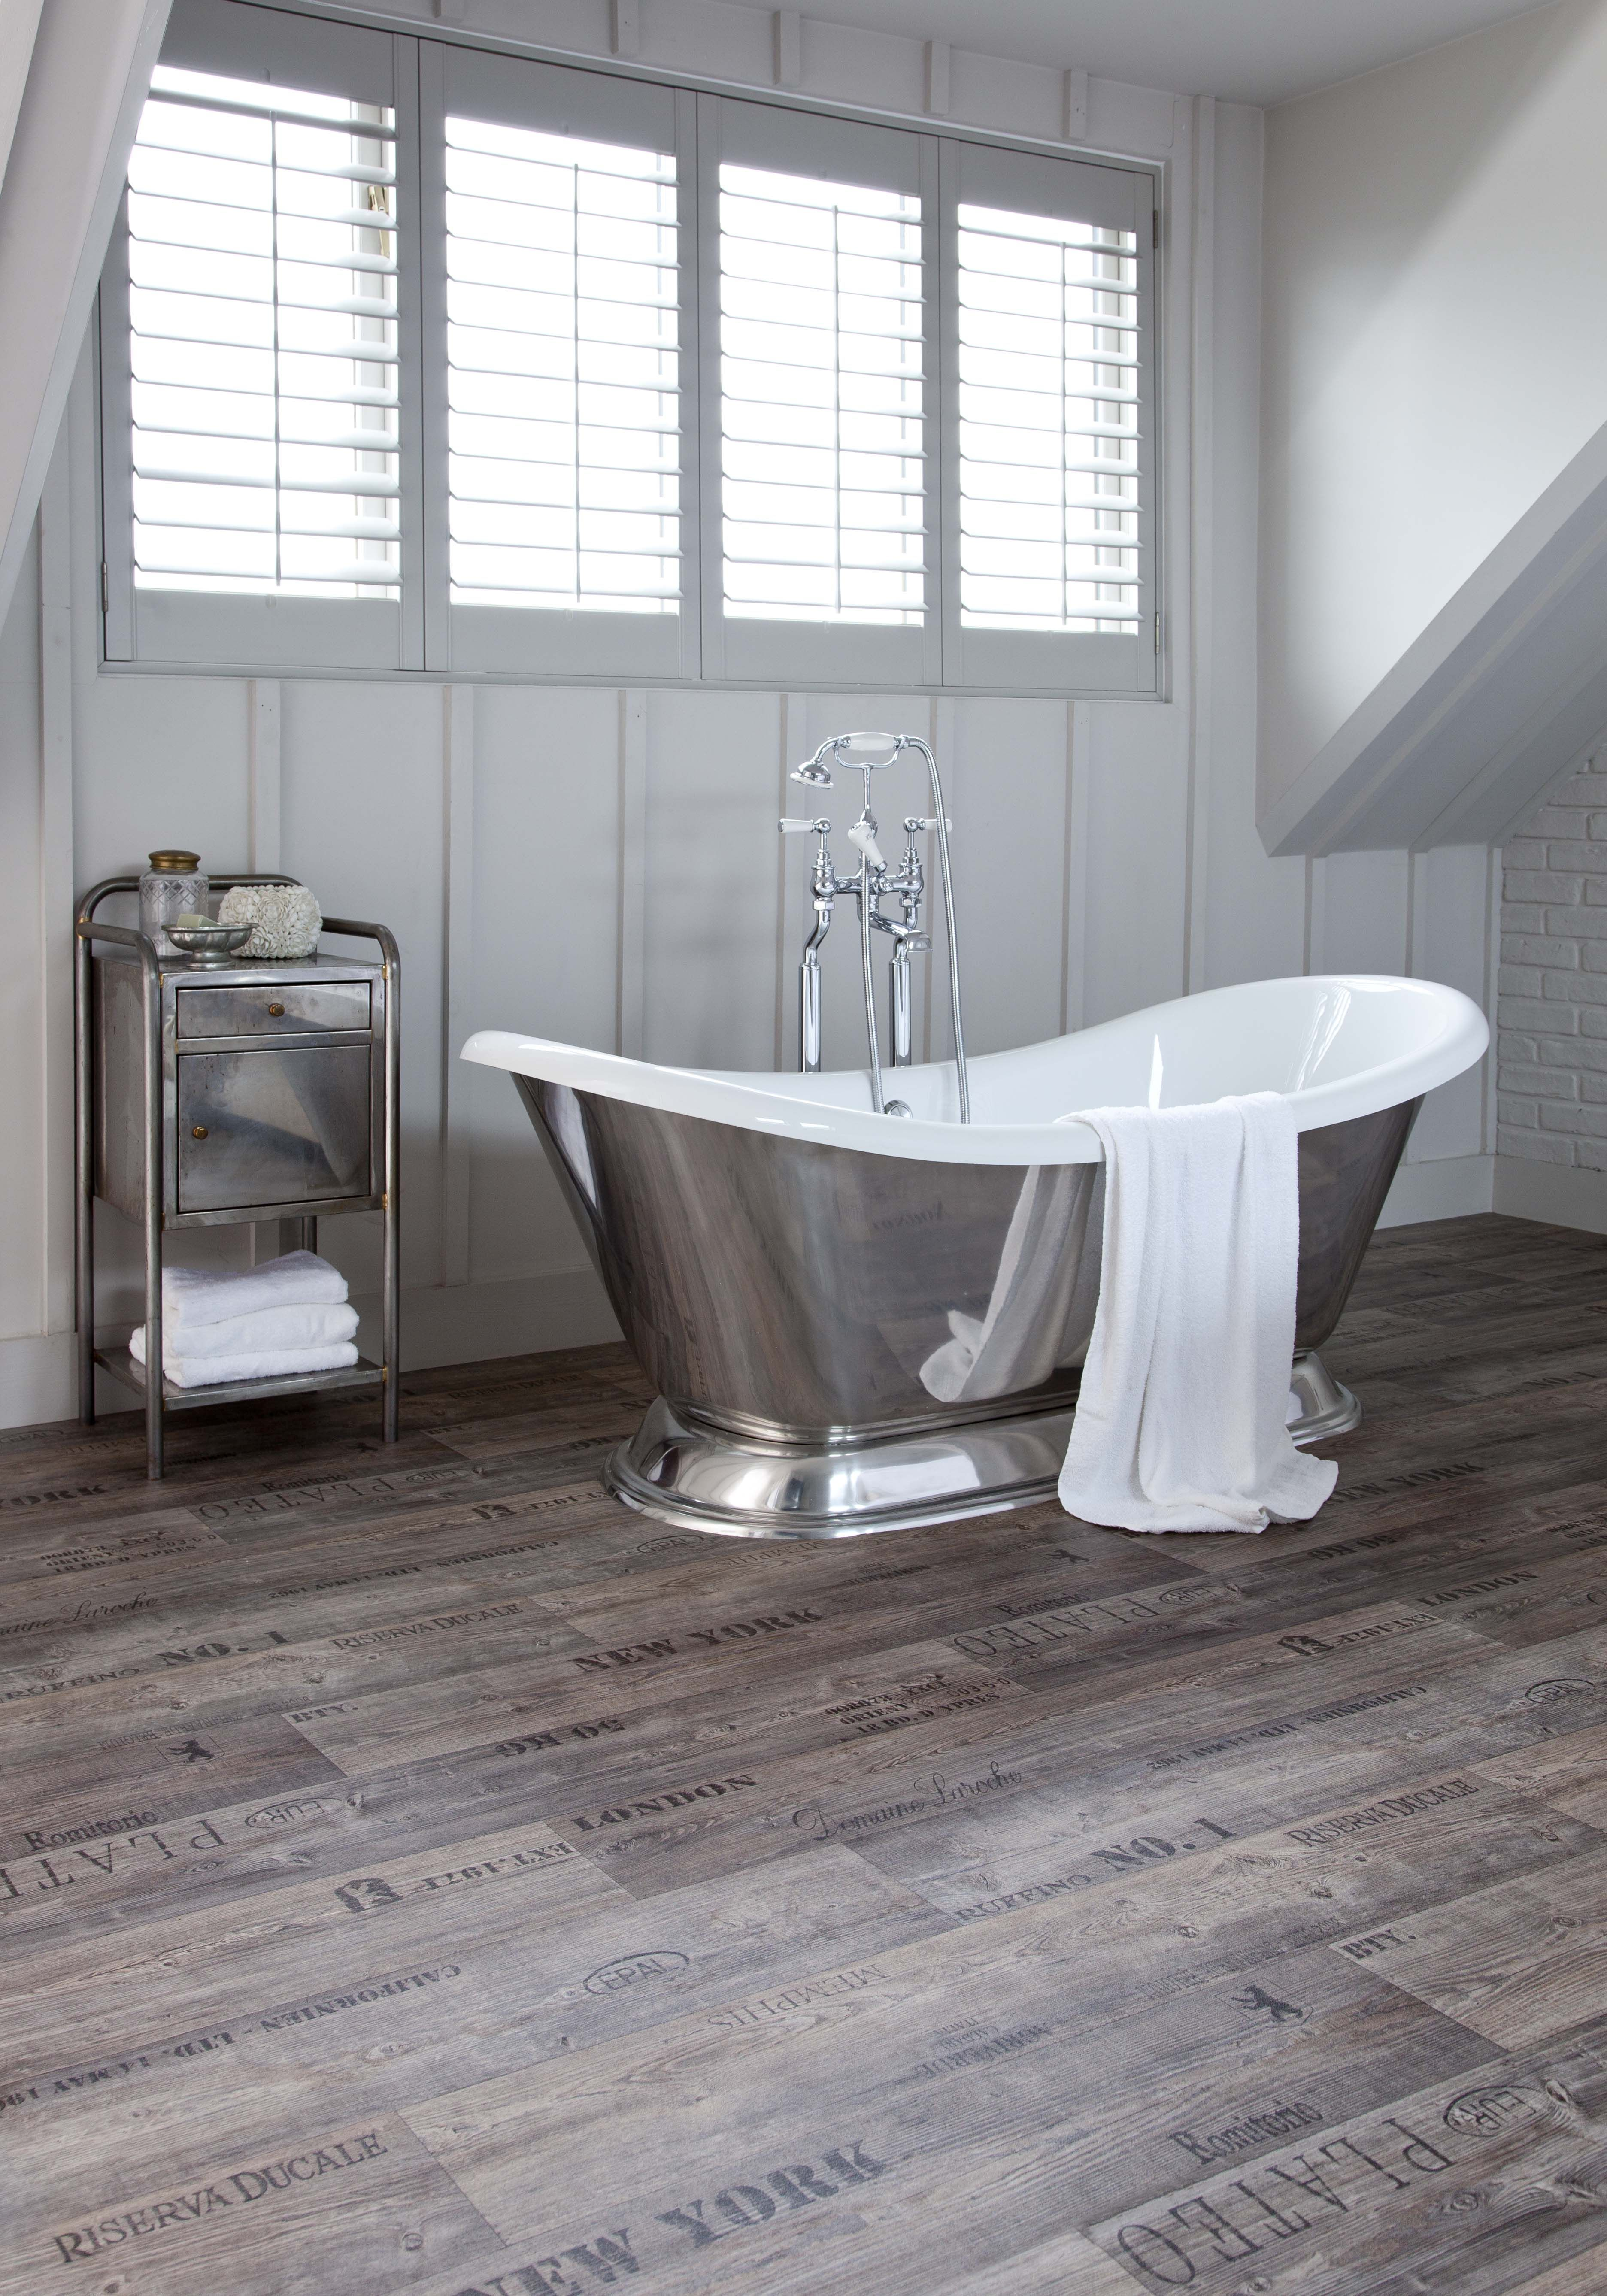 A Statement Bath Like This Can Be Great Addition Complementing Memphis Flooring From The Luxury Woods Collection Www Leoline Co Uk